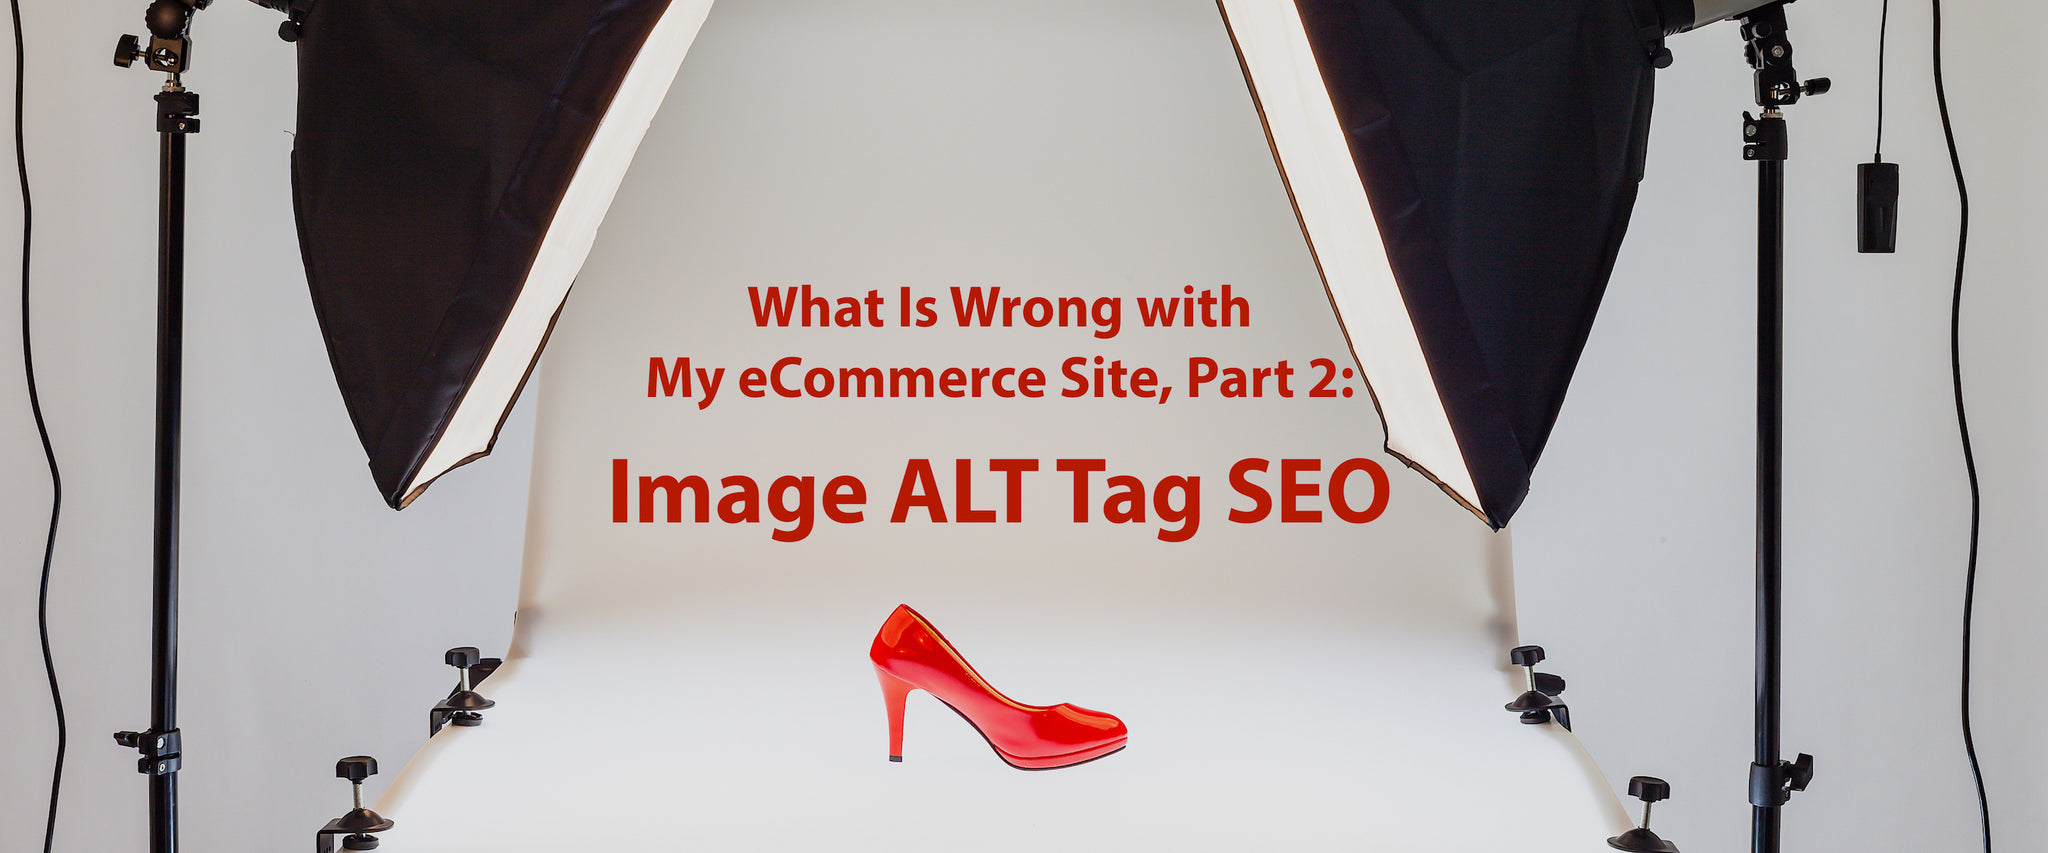 What Is Wrong with My eCommerce Site, Part 2: Image ALT Tag SEO